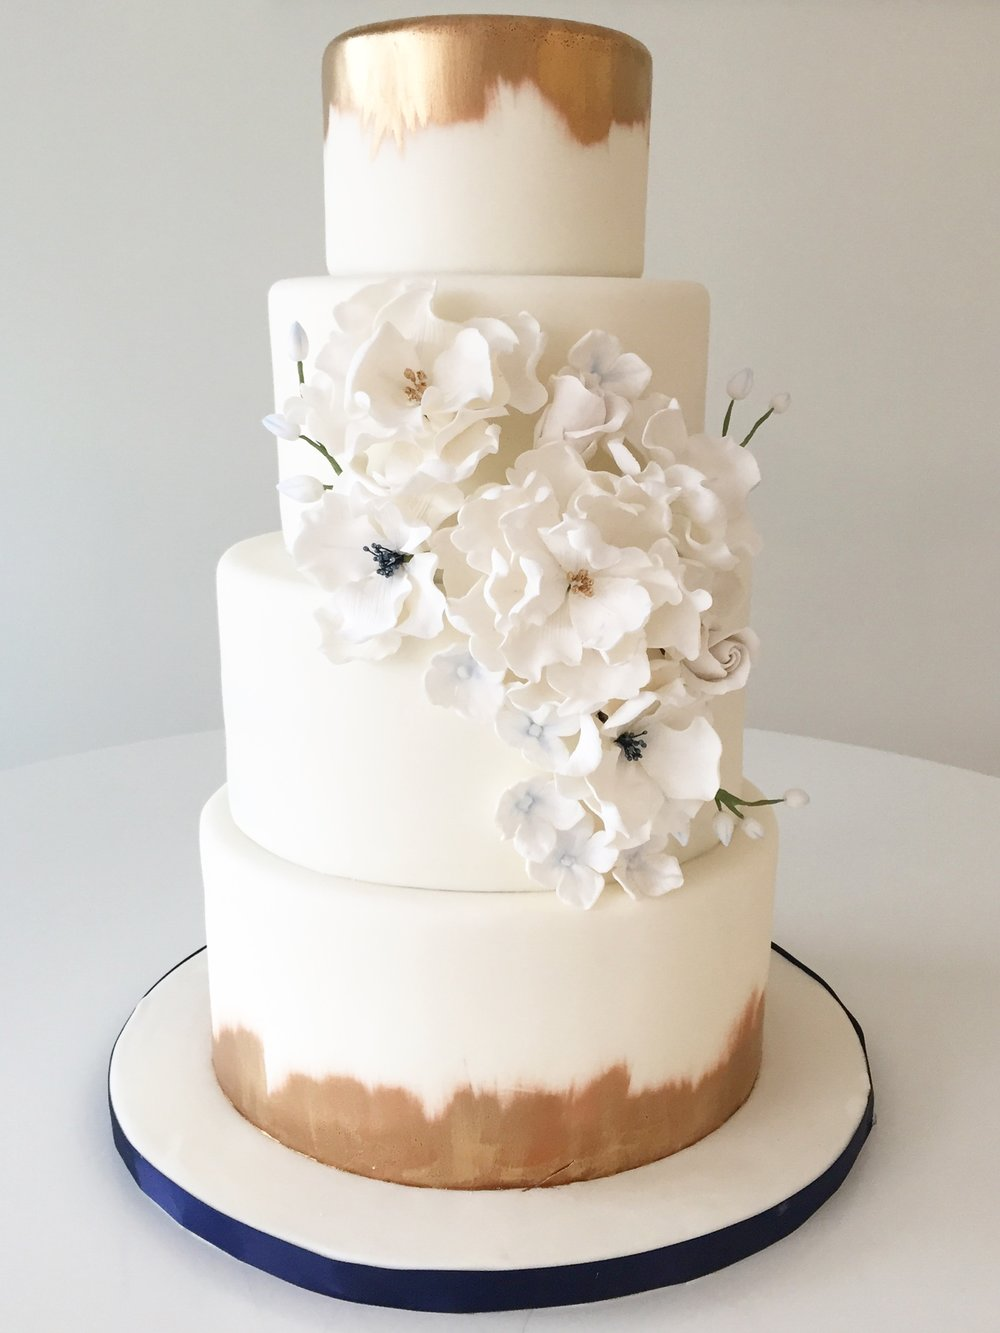 Joseph & Diana Wedding Cake